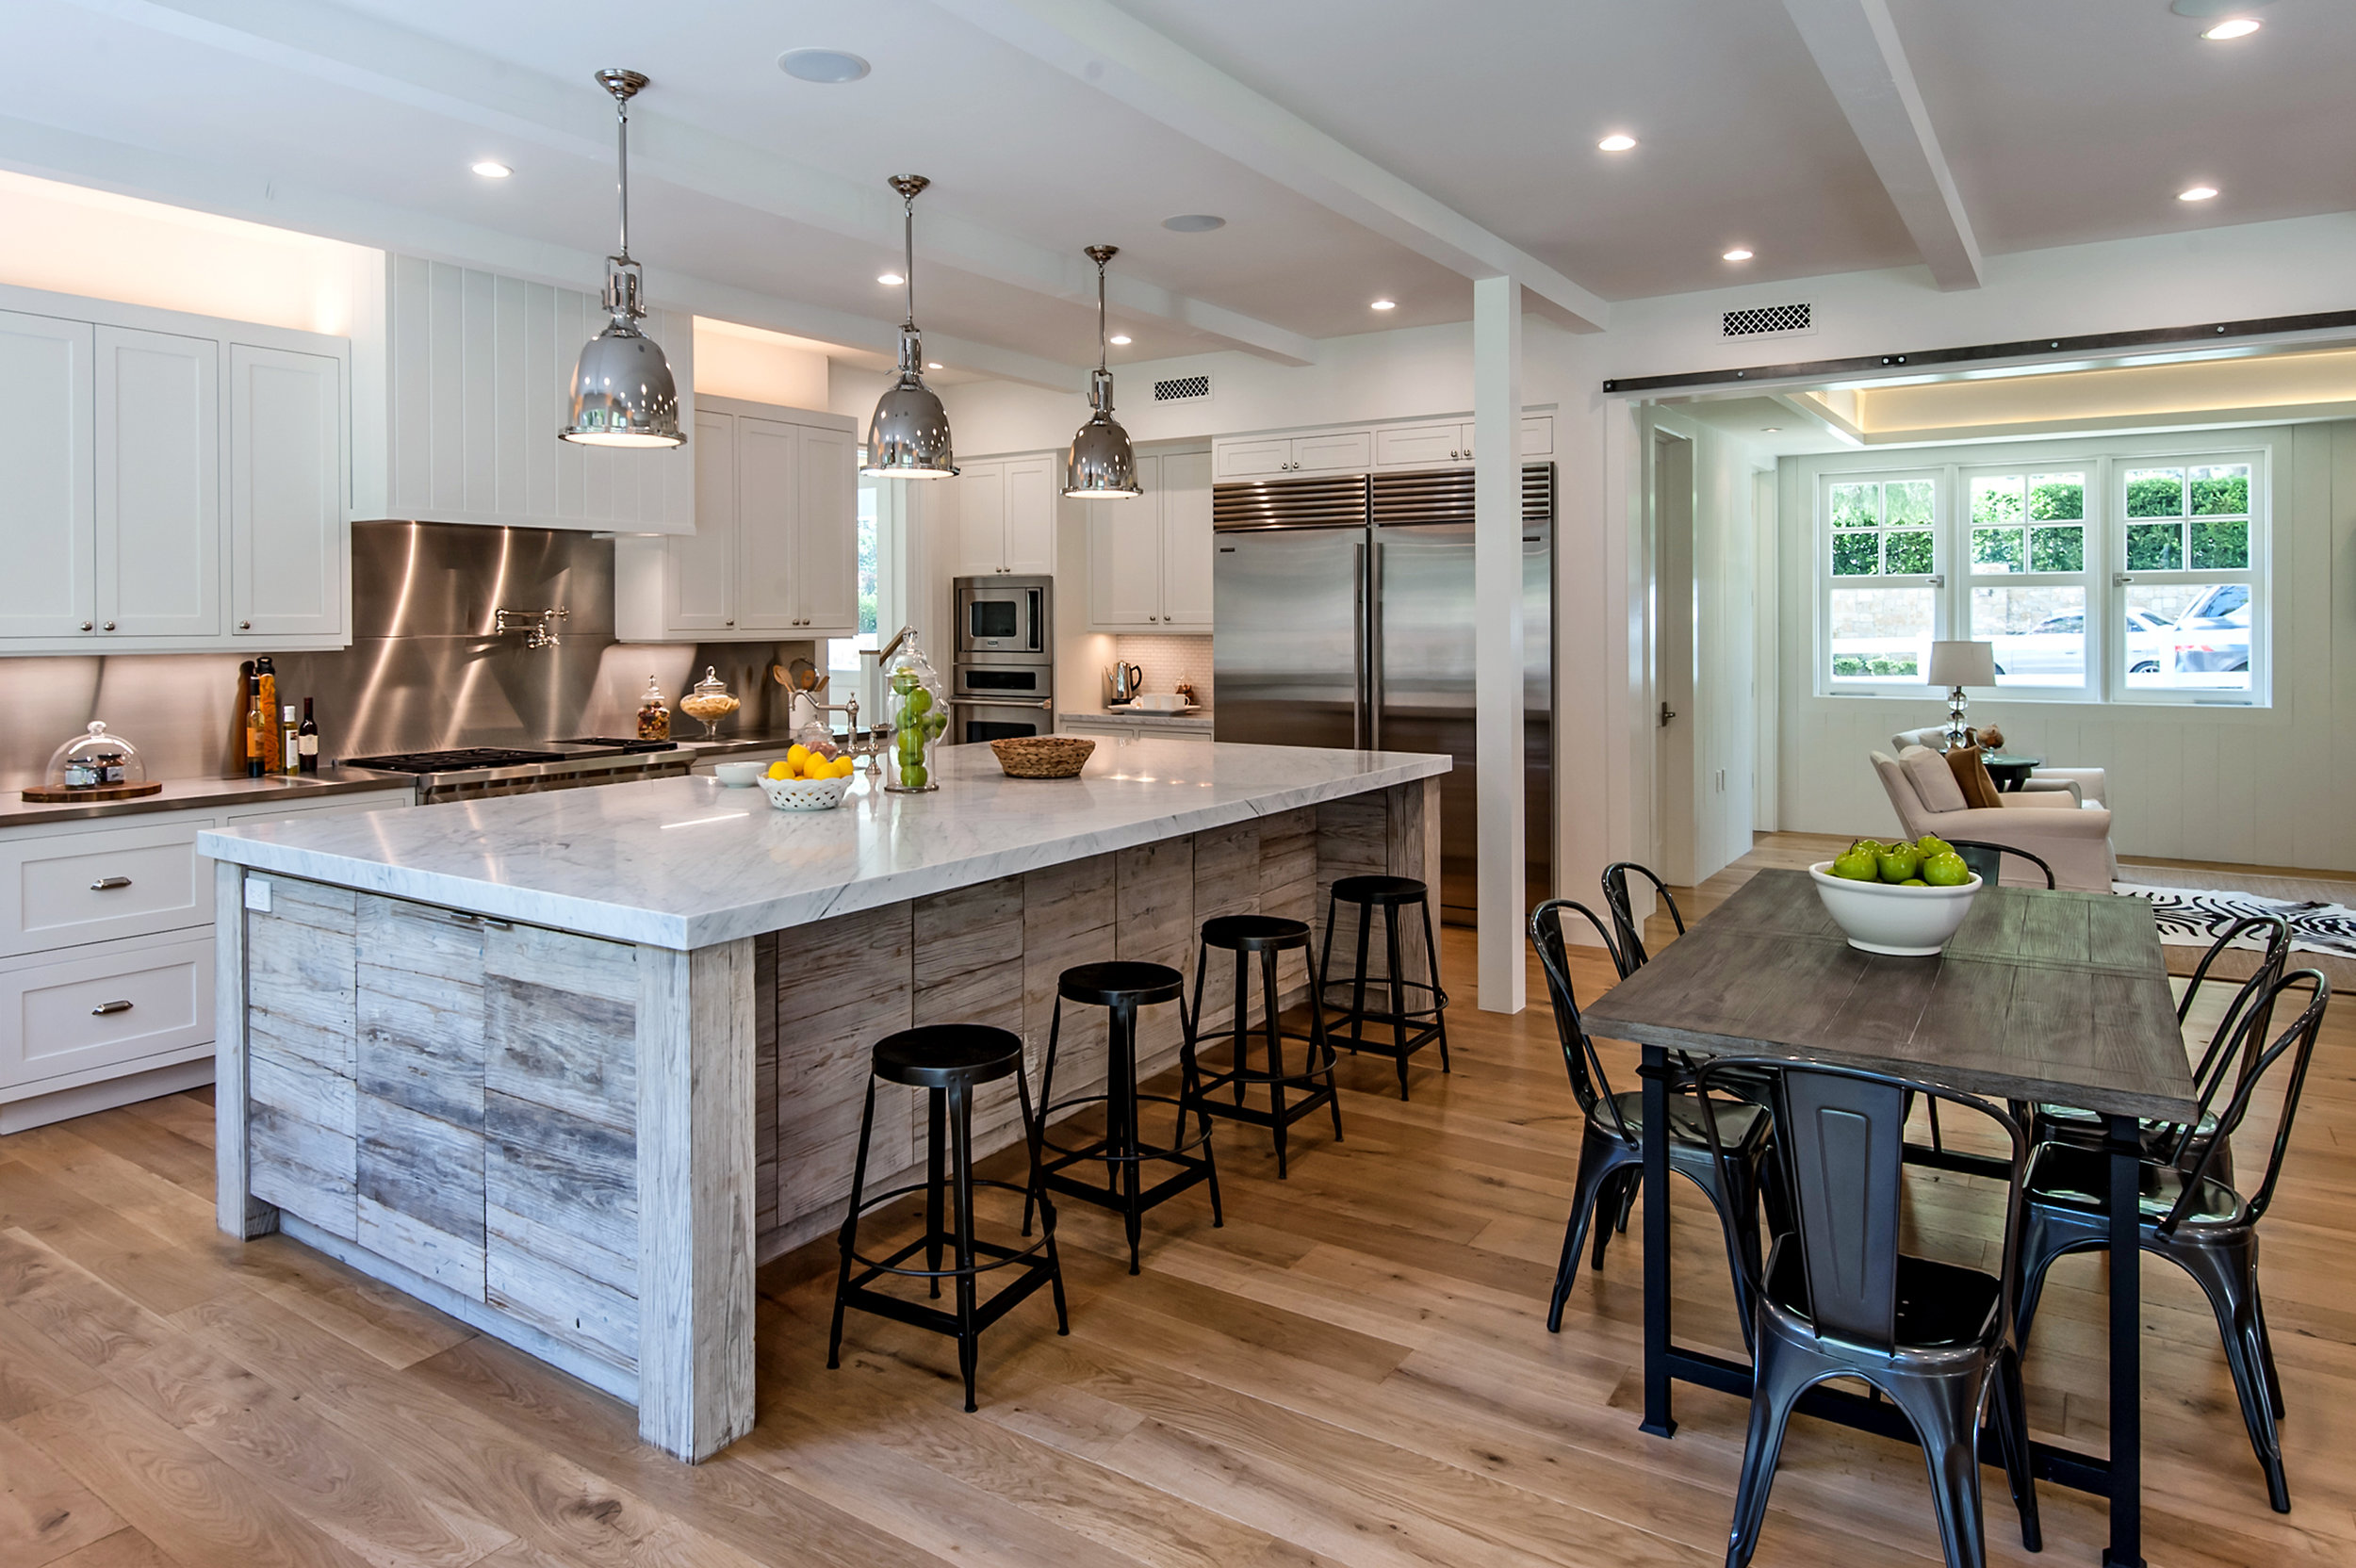 BAA_23344_palm_canyon_lane_kitchen.jpeg